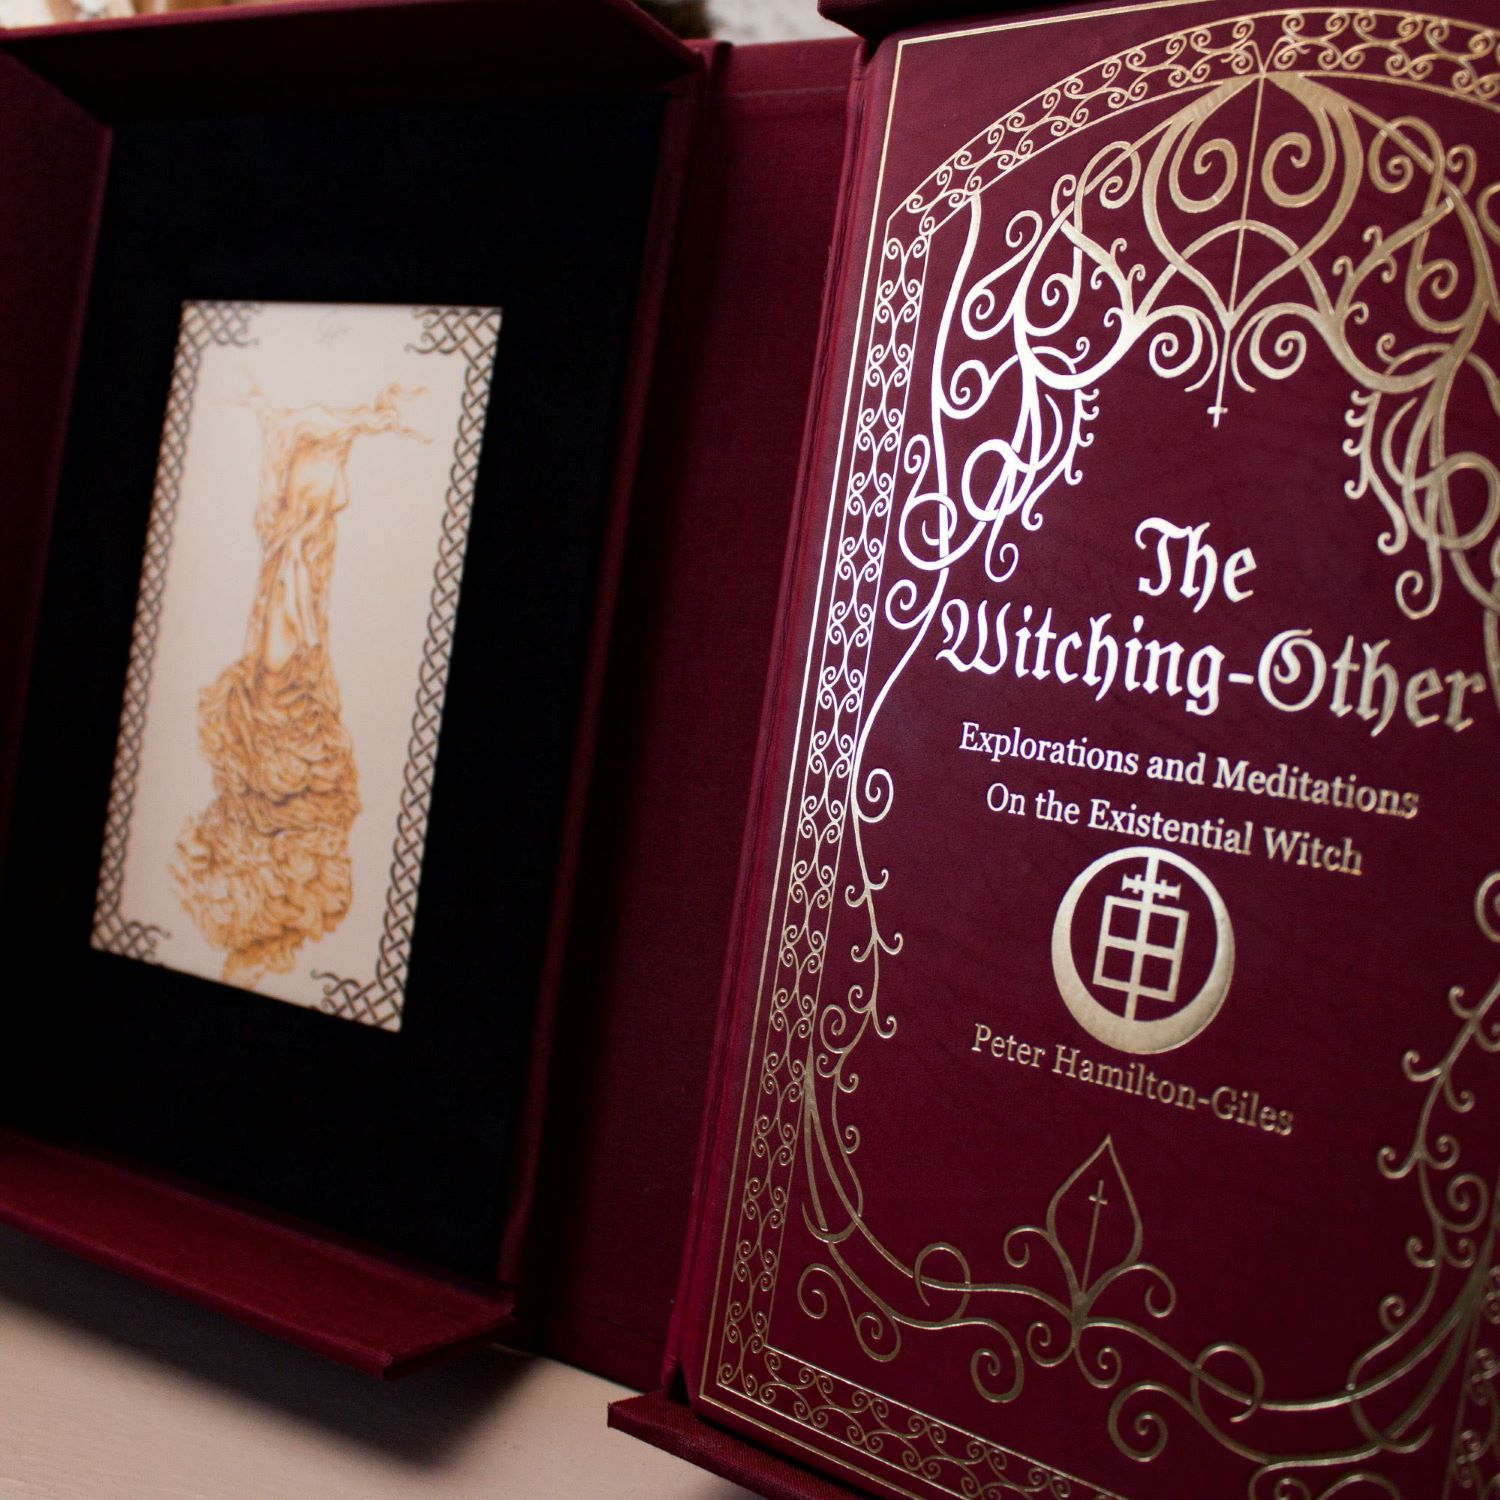 The Witching-Other - Deluxe Edition